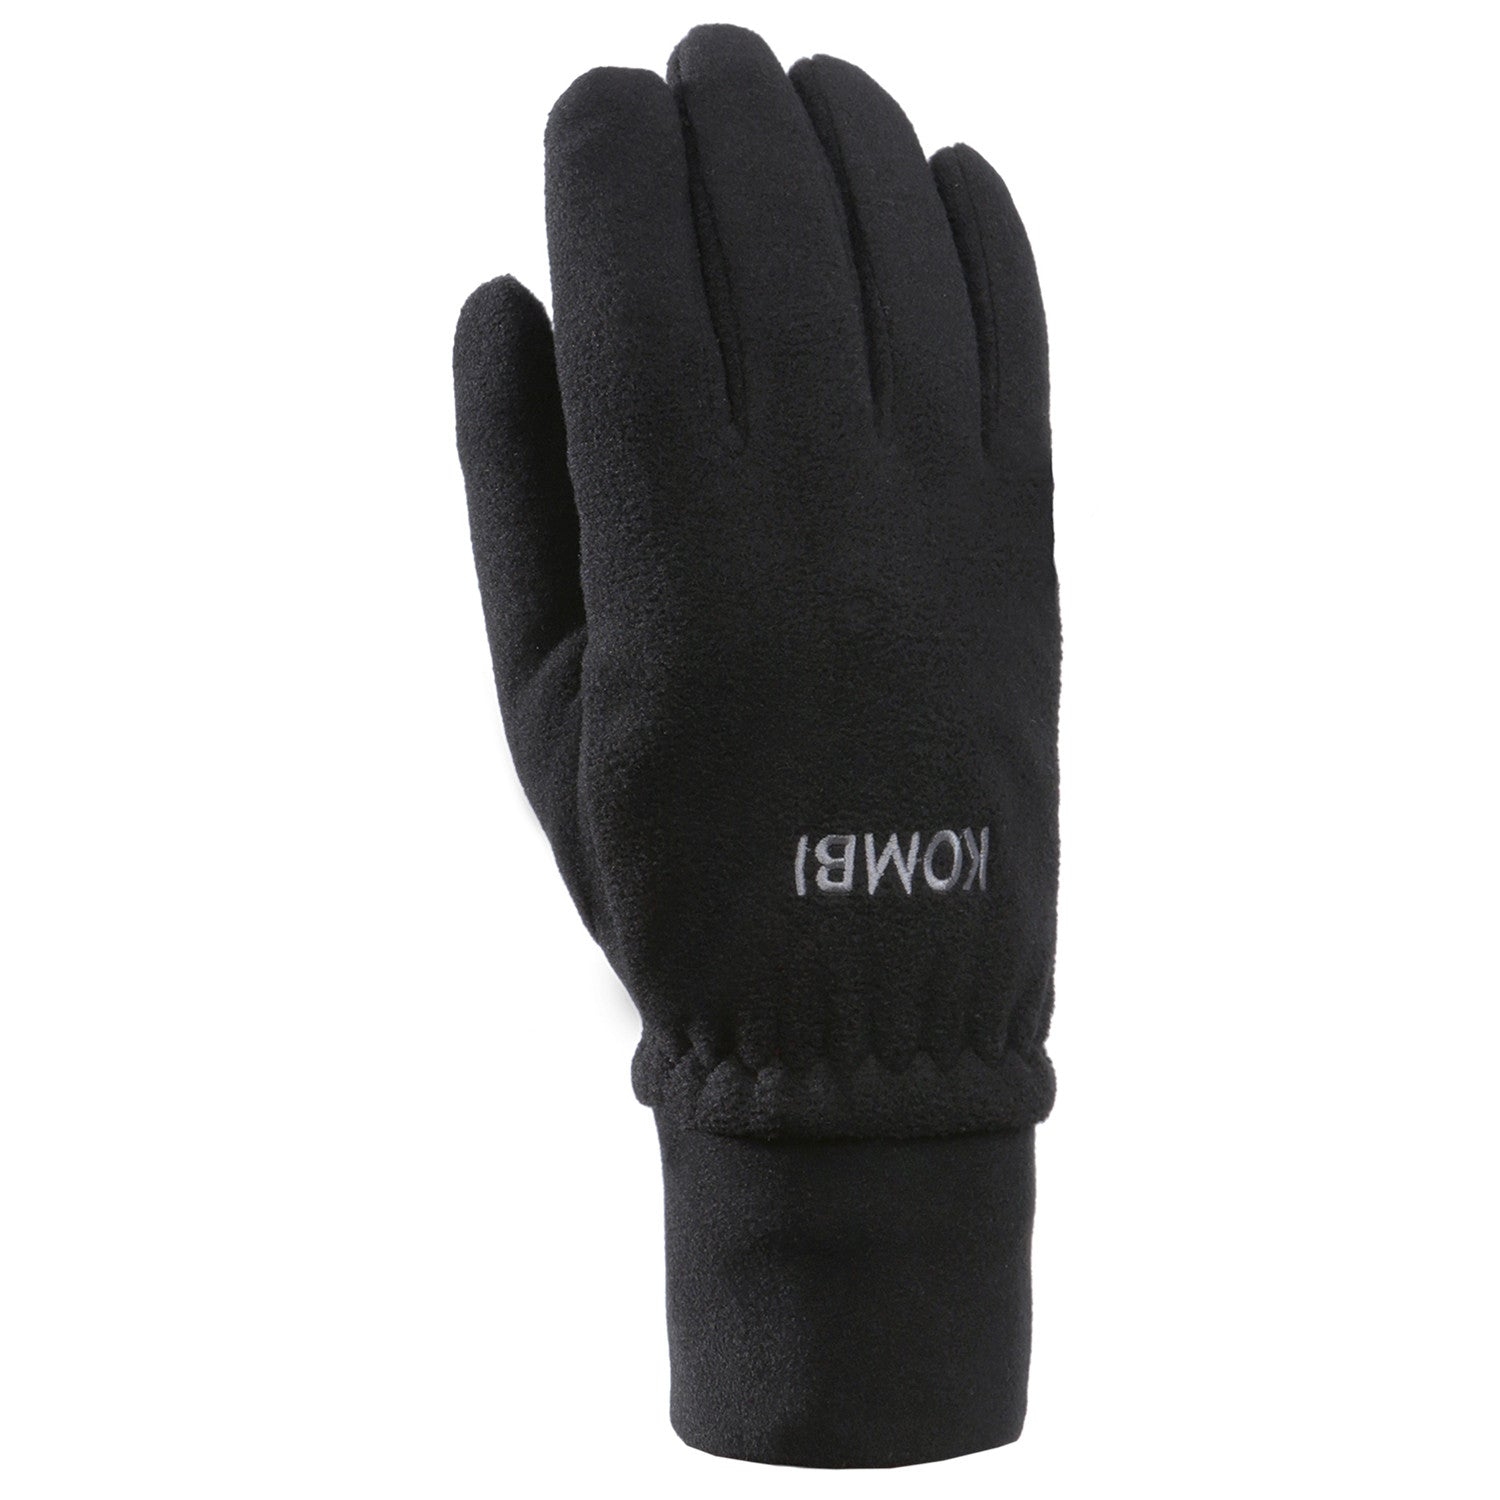 Kombi The Windguardian Glove - Men's